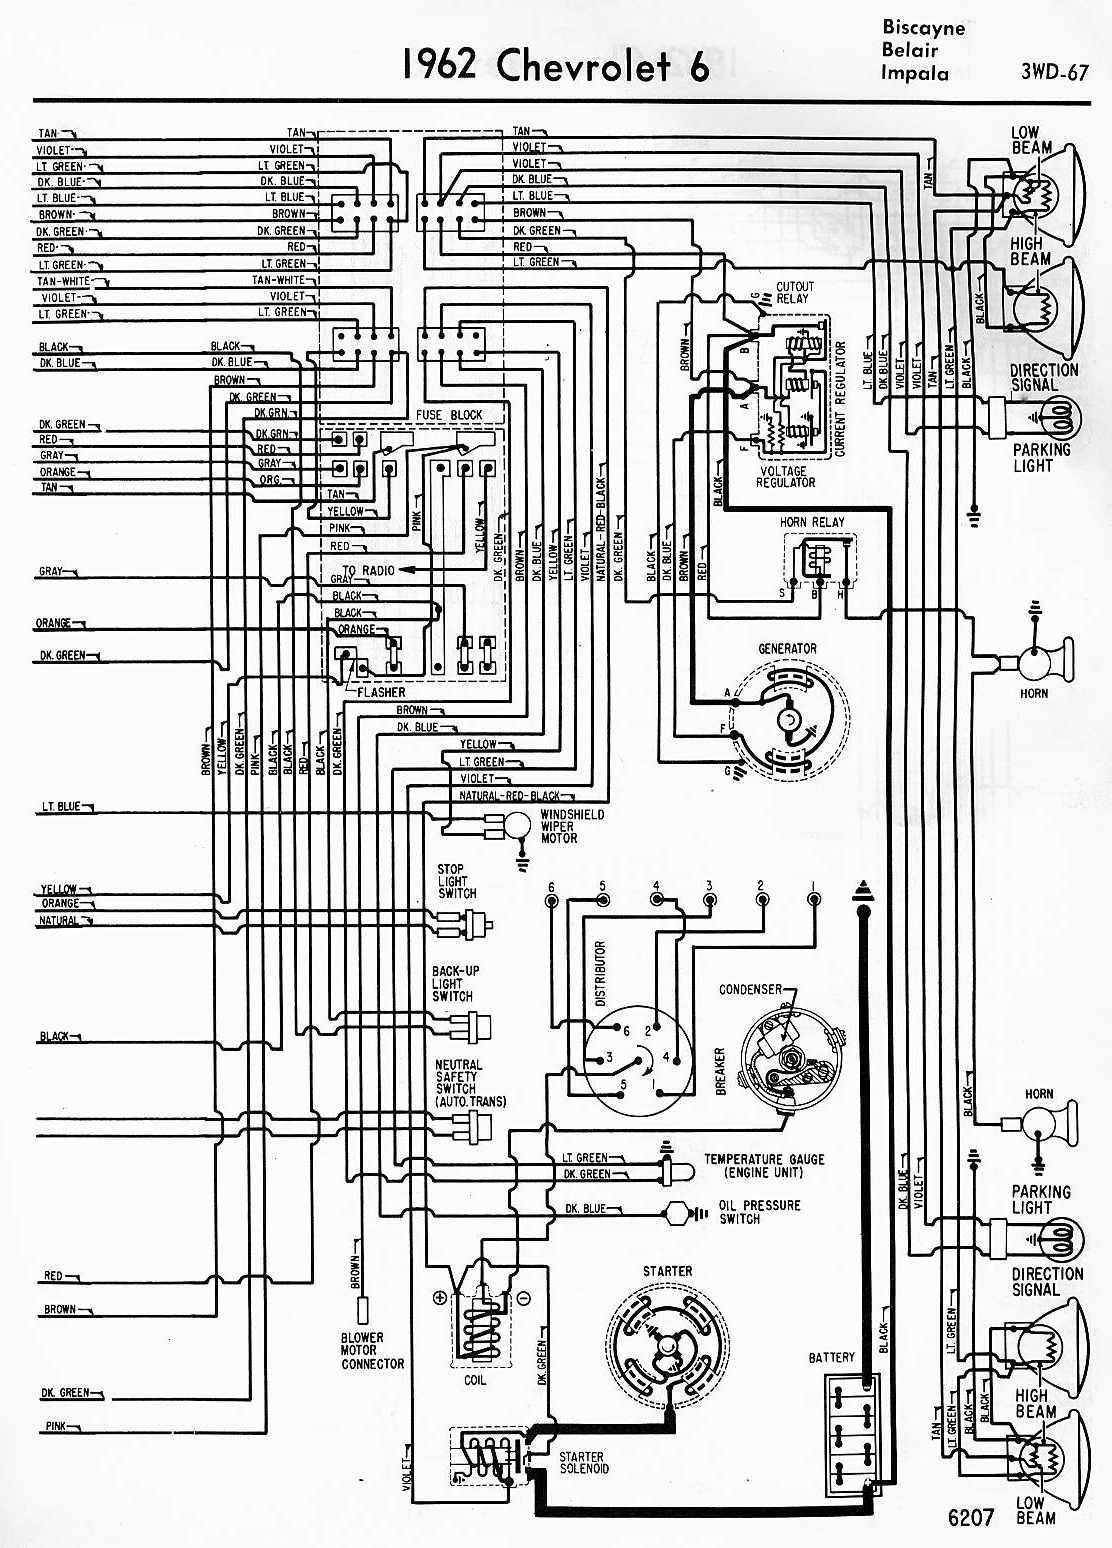 1965 chevrolet chevy ii wiring diagram all about wiring diagrams